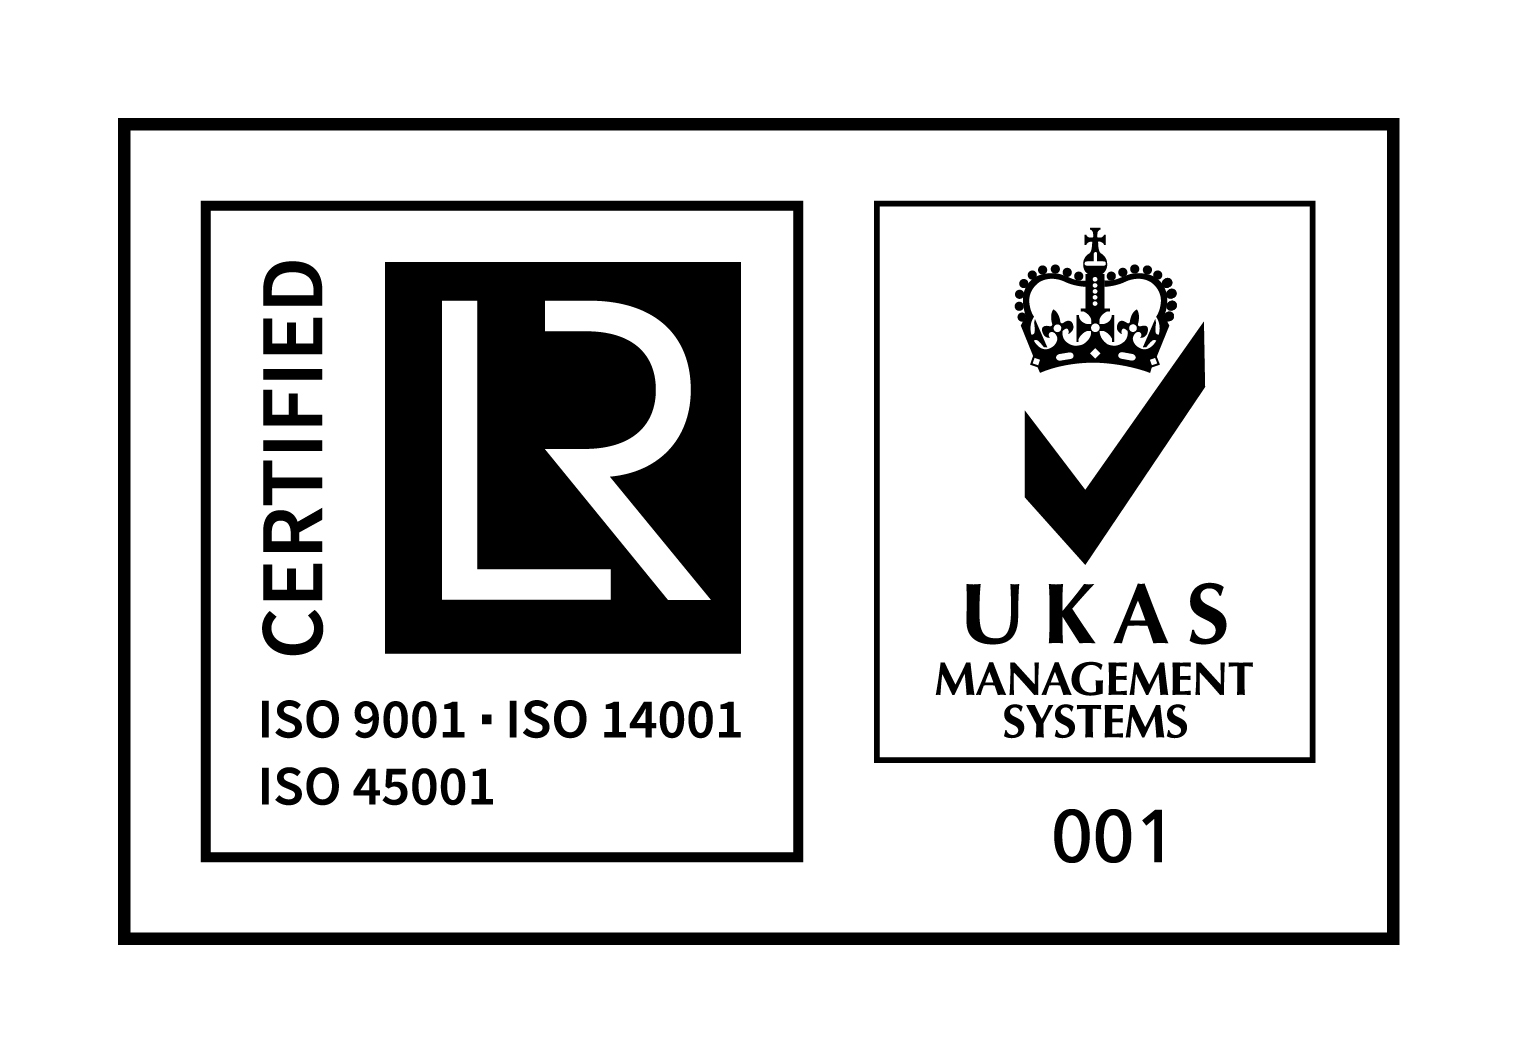 UKAS AND ISO 9001 - ISO 14001 - ISO 45001-CMYK.jpg